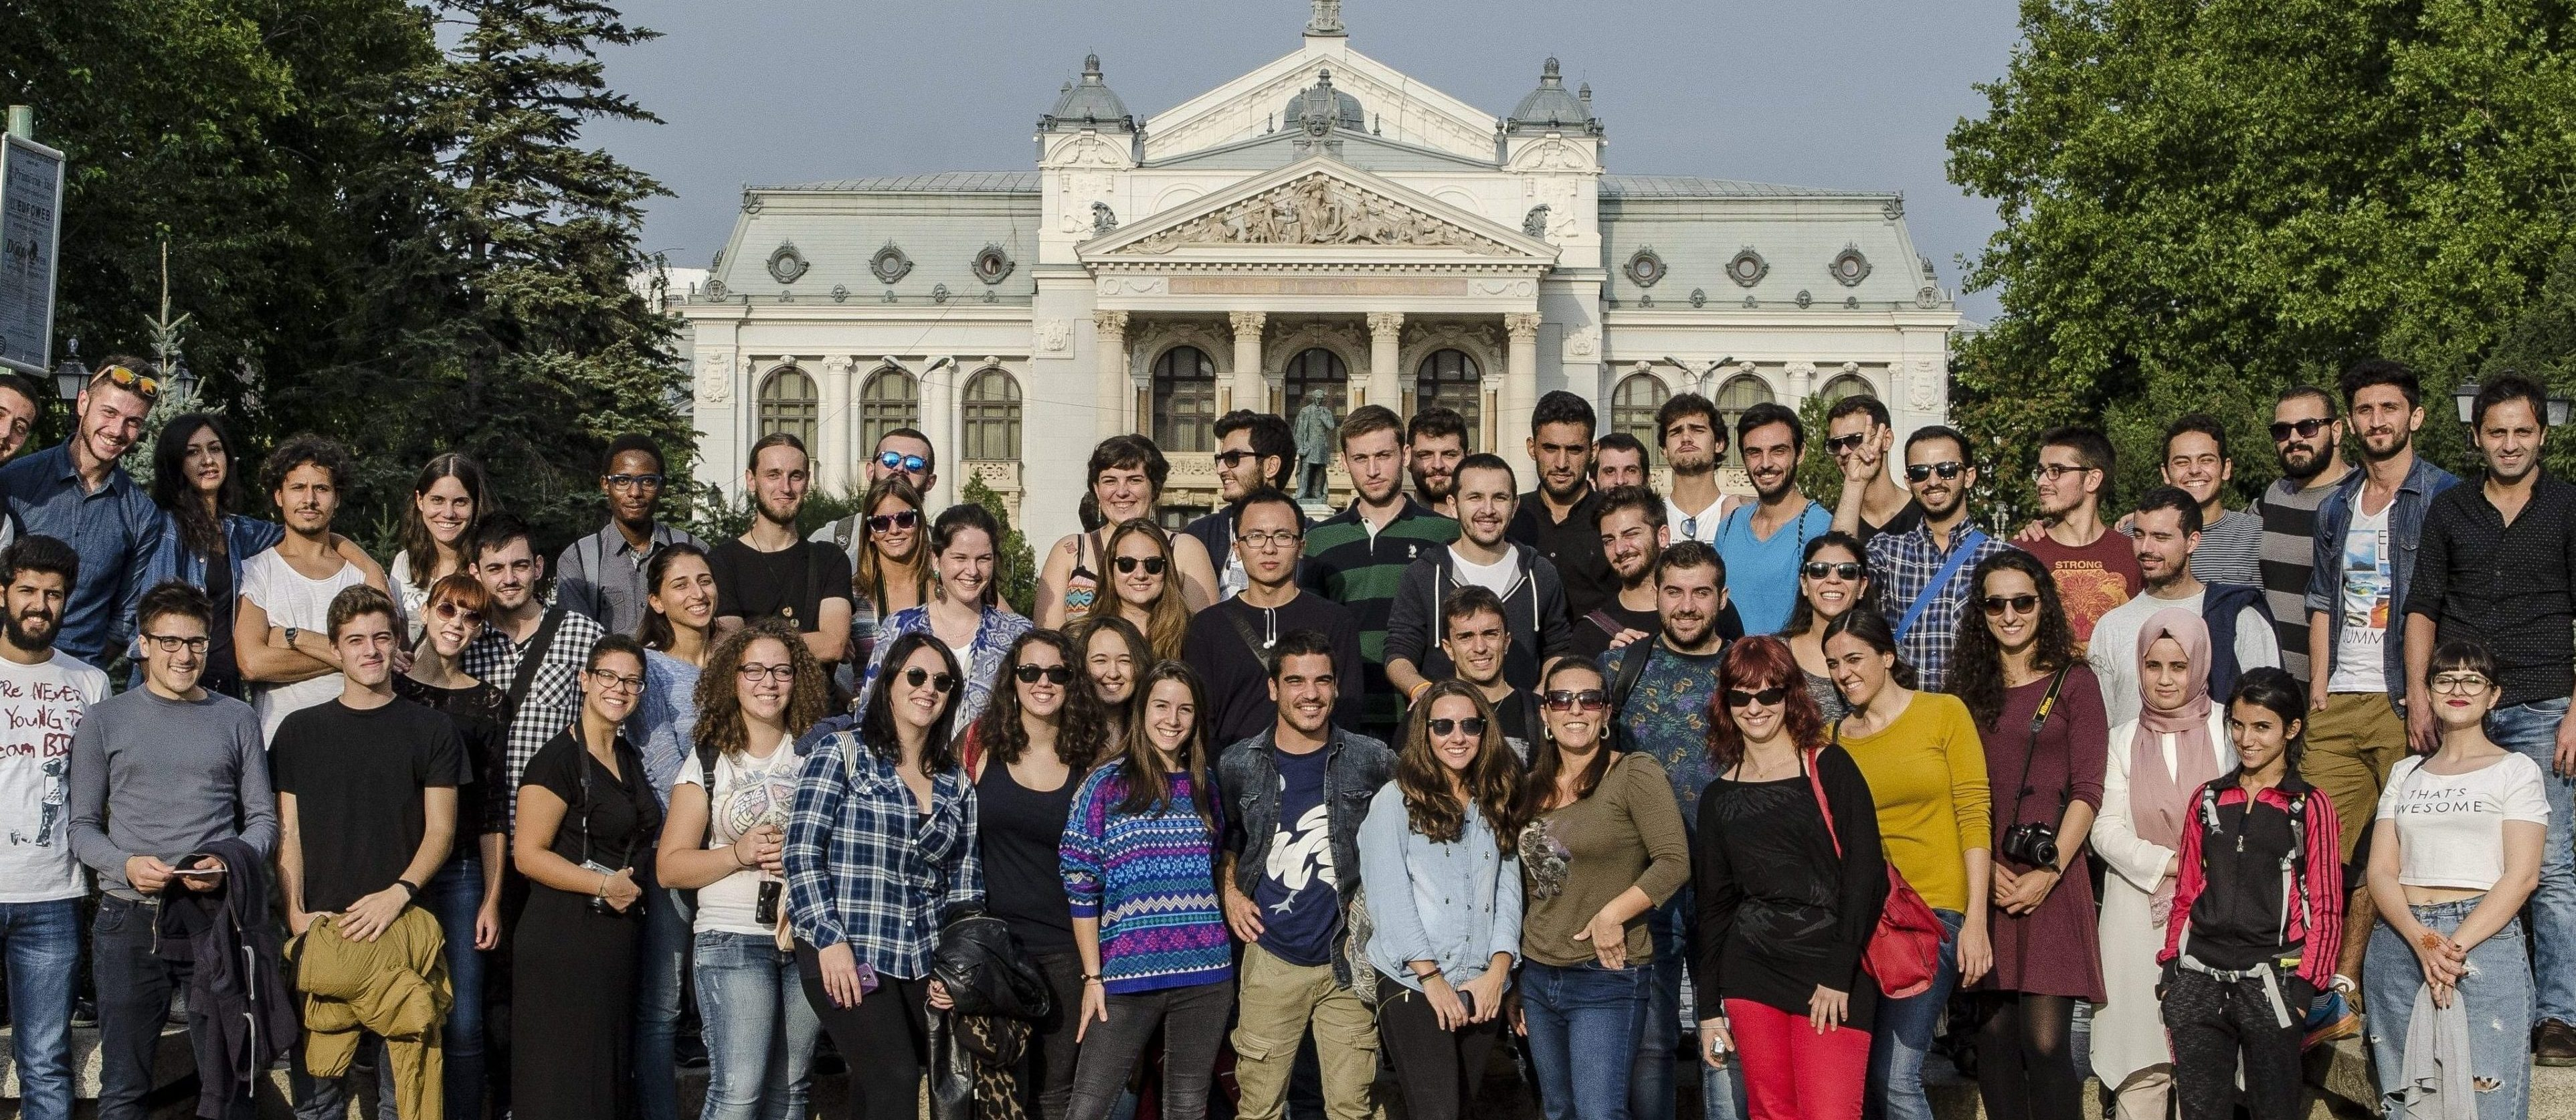 JASSY Summer School – A JOURNEY THROUGH HARD SCIENCES, ECONOMICS, SOCIAL SCIENCES AND THE TOURISM INDUSTRY